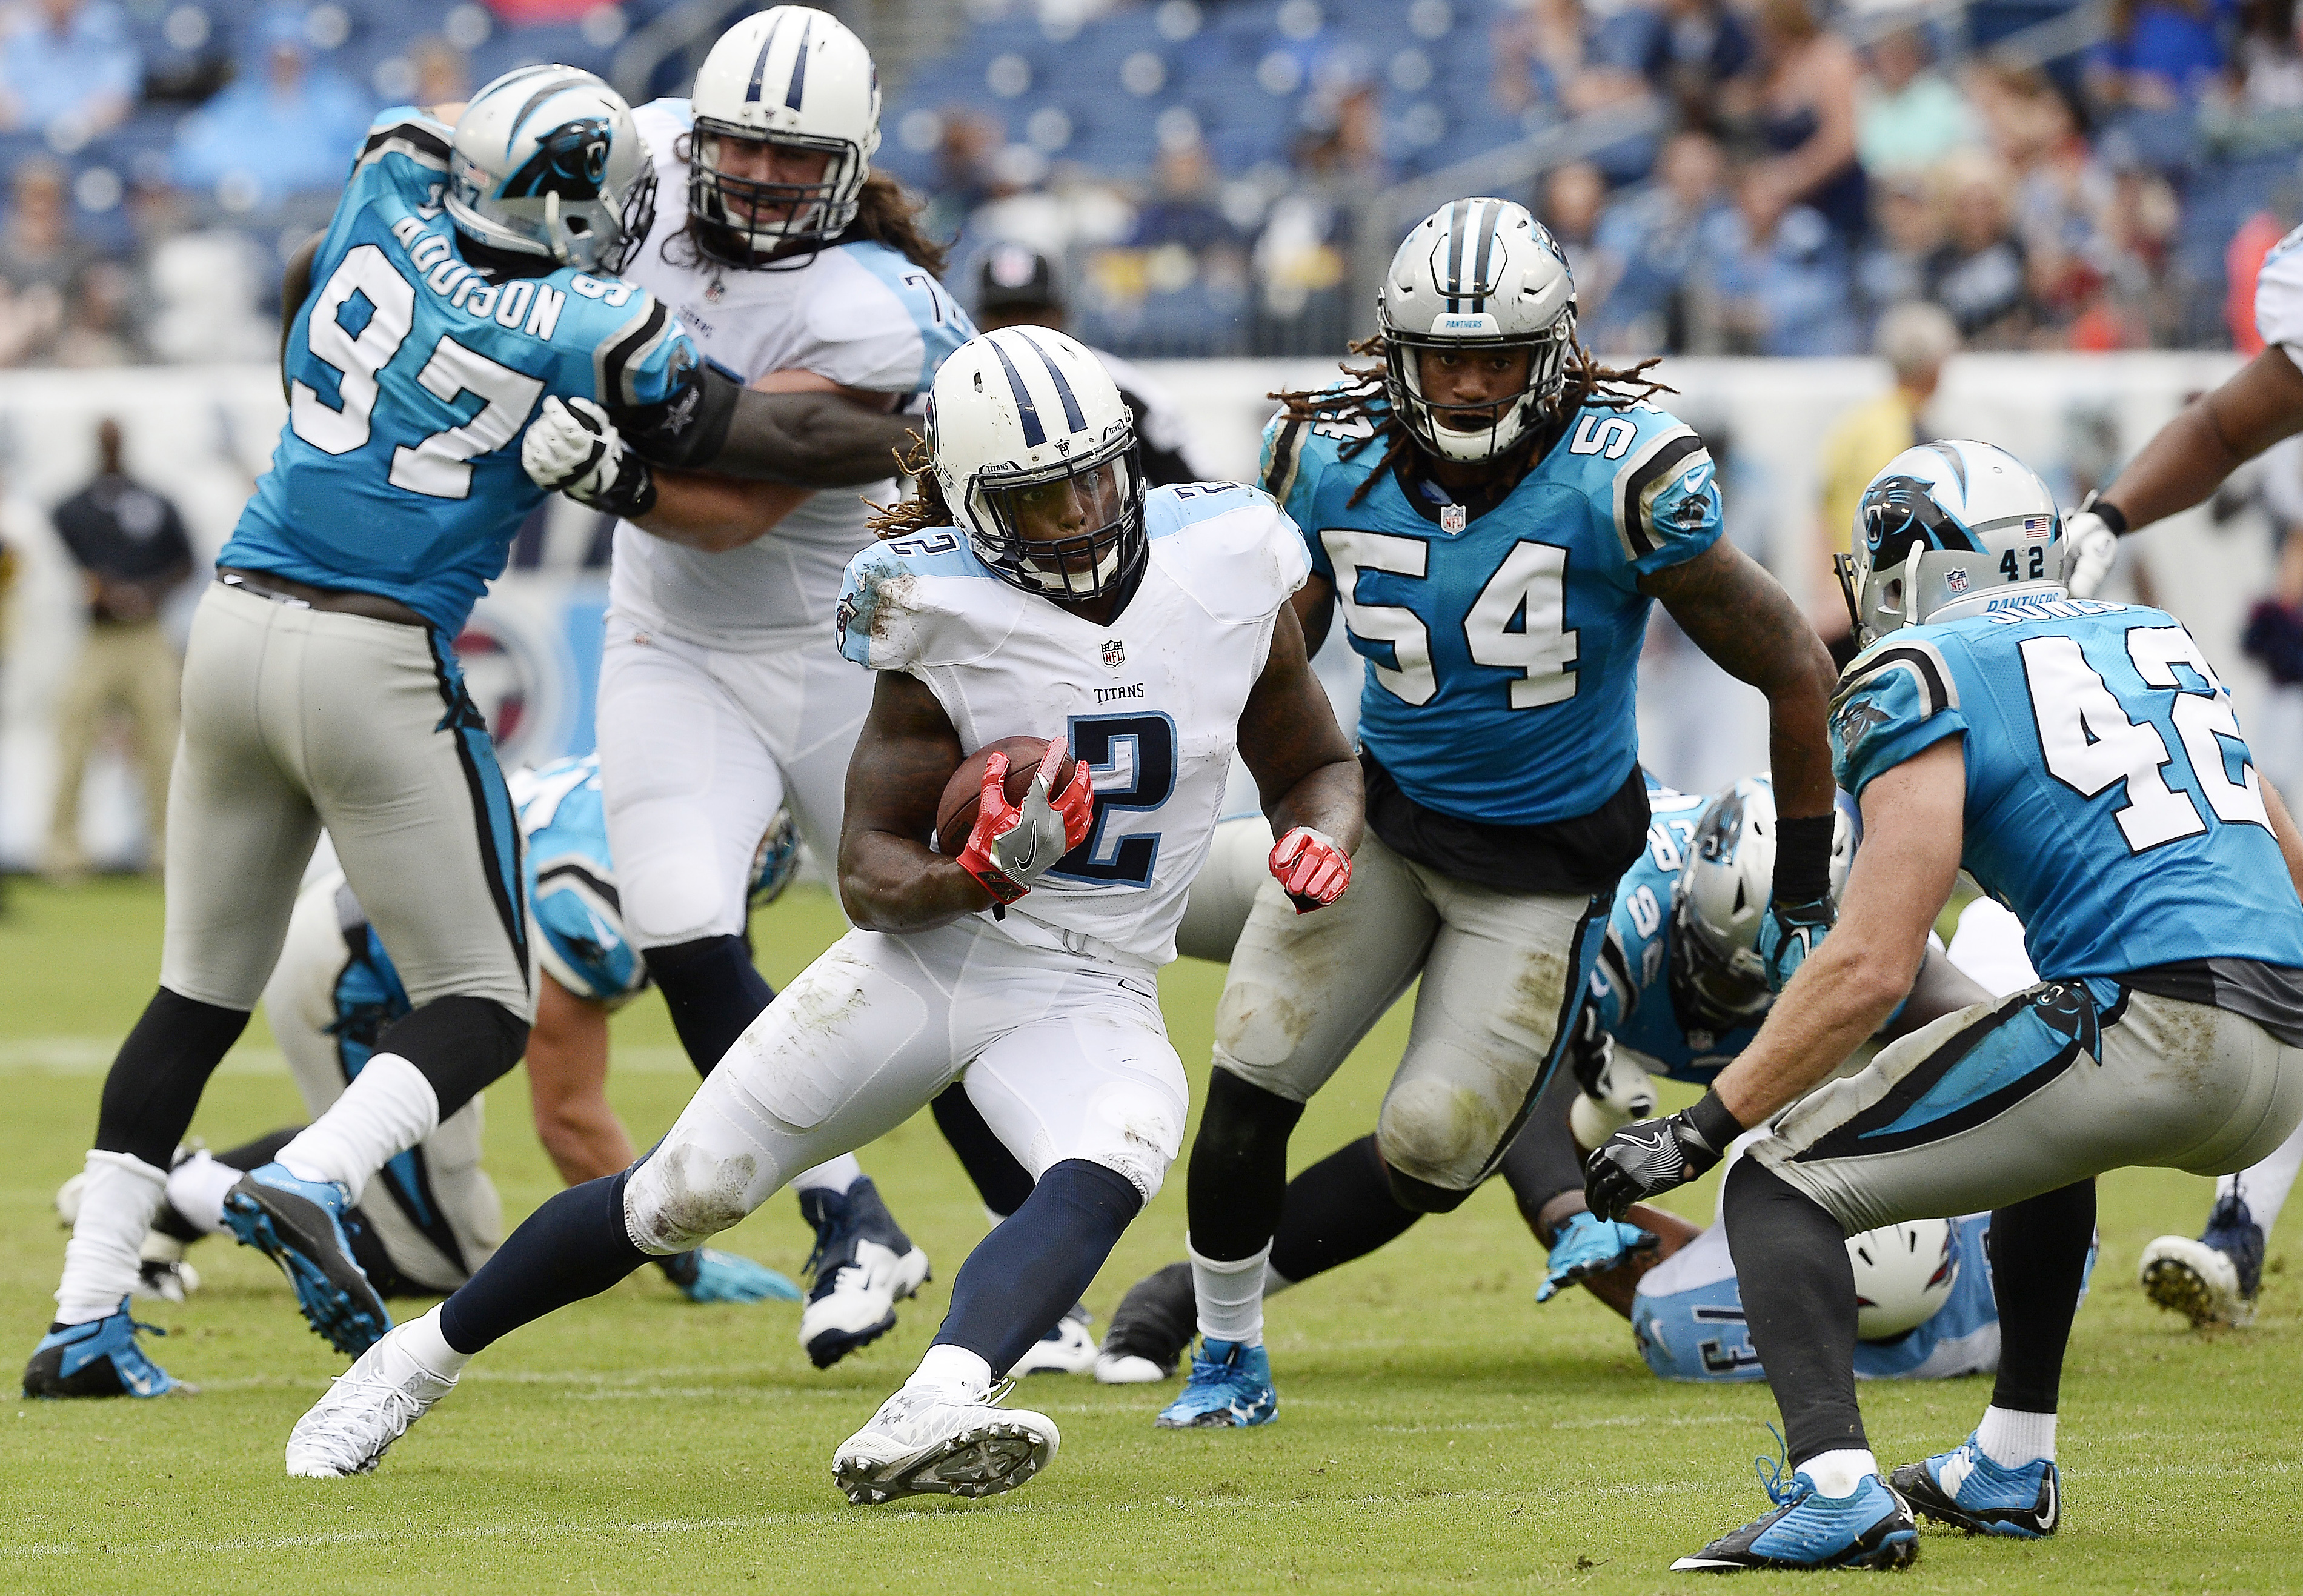 FILE - In this Aug. 20, 2016, file photo, Tennessee Titans running back Derrick Henry (2) runs against the Carolina Panthers during the second half of an NFL preseason football game in Nashville, Tenn. Henry finally has settled on a number for the regular